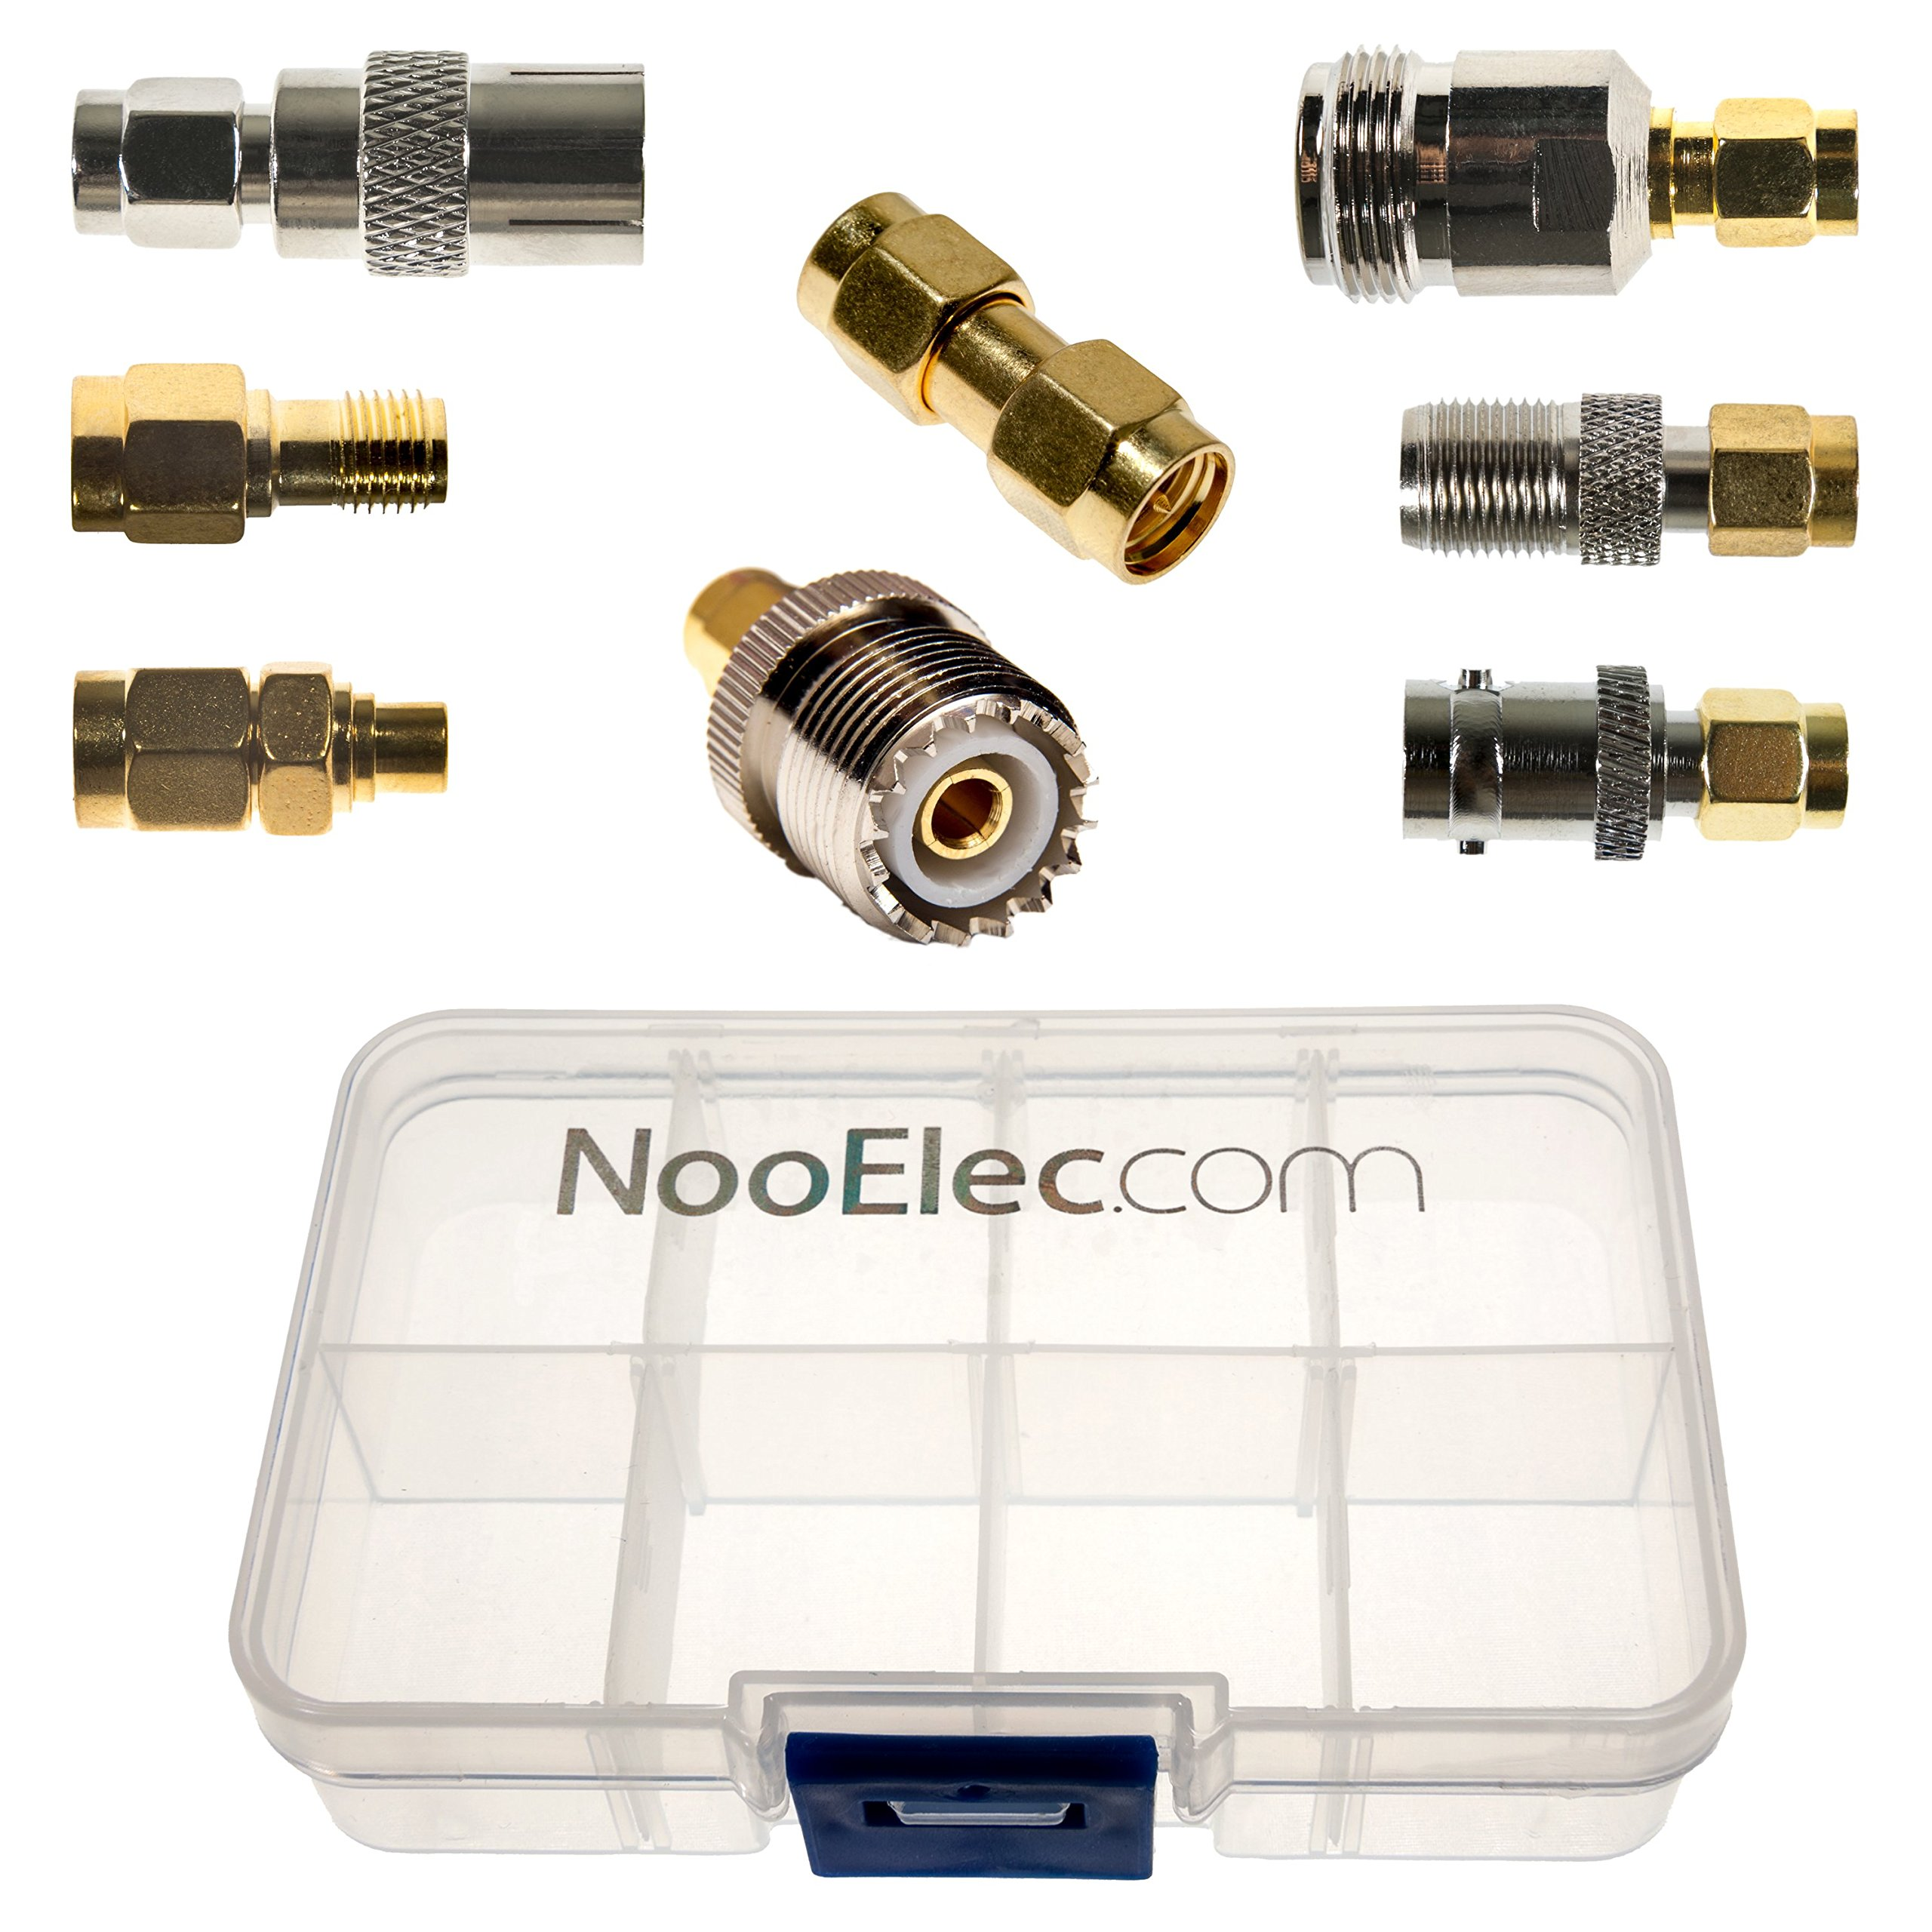 NooElec SMA Adapter Connectivity Kit - Set of 8 Adapters for NESDR SMArt (RTL-SDR) and Other SMA Software Defined Radios w/Portable Carrying Case